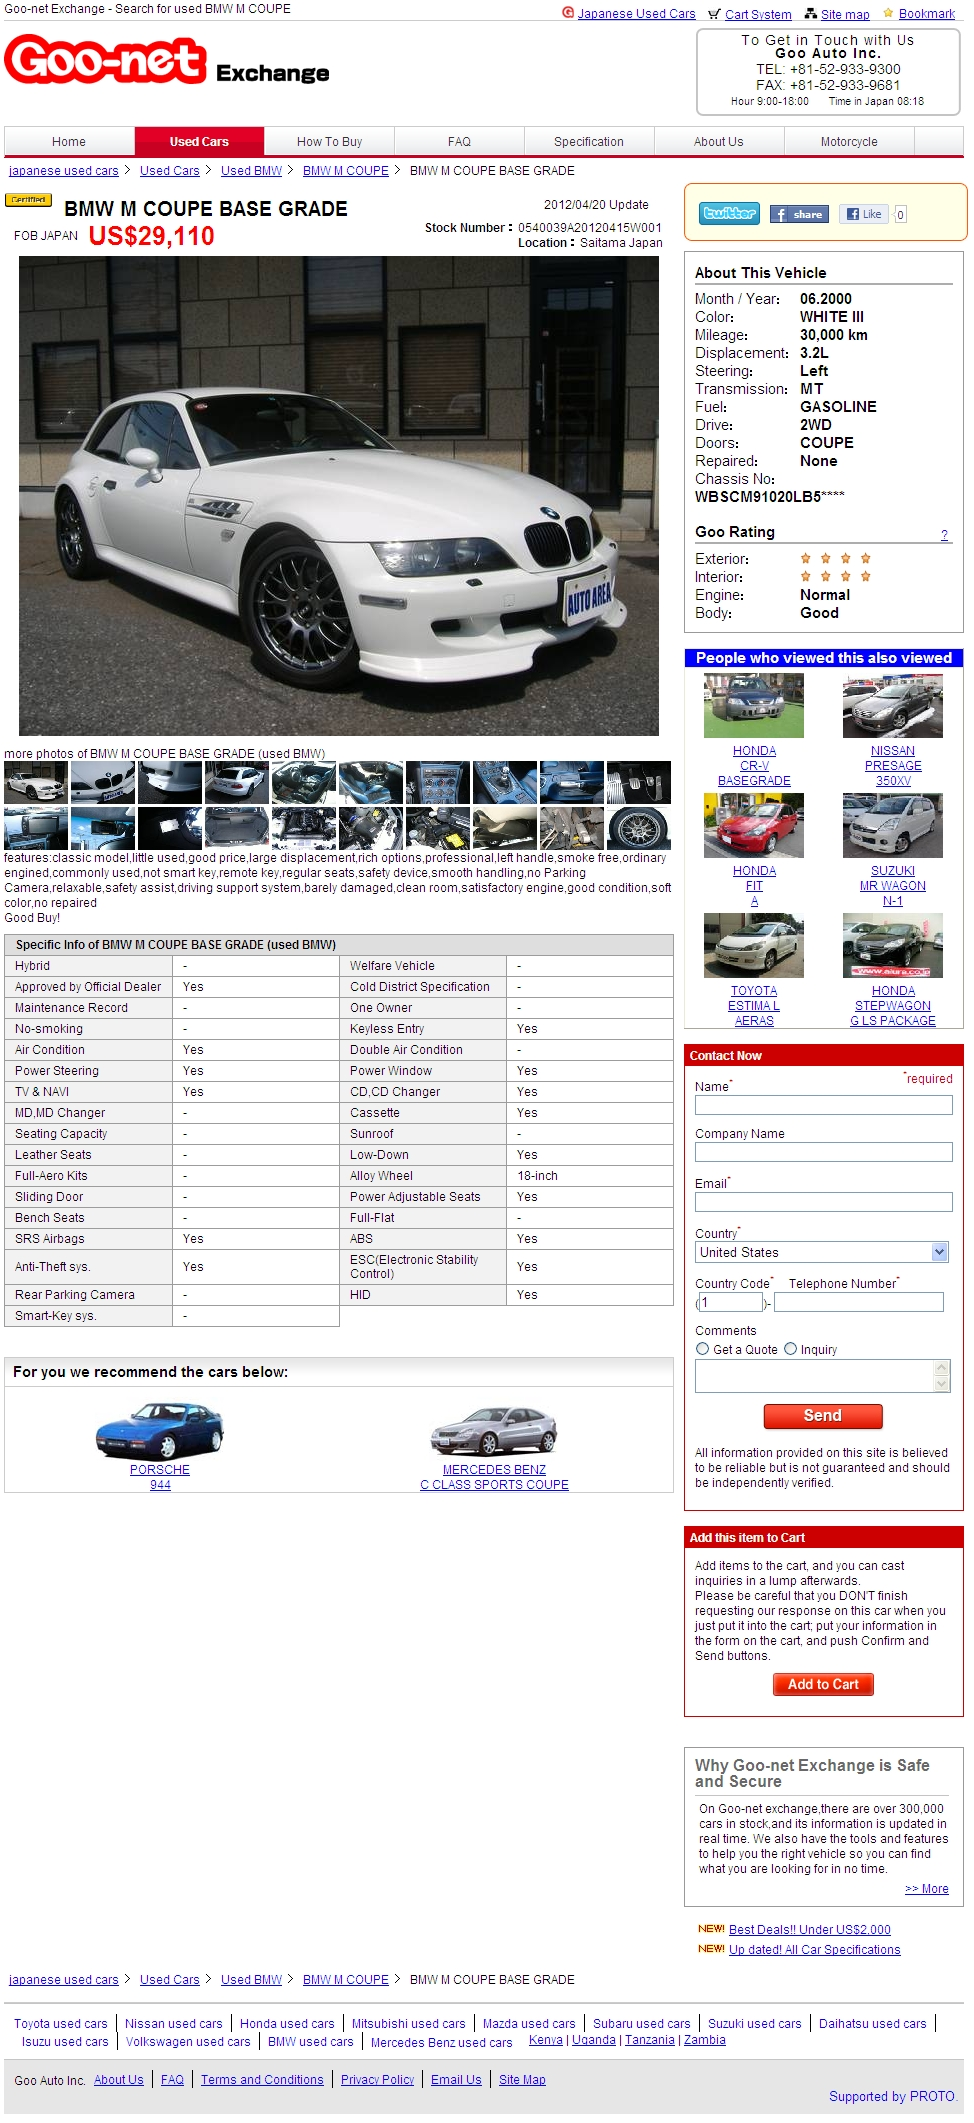 2000 M Coupe | Alpine White | Estoril/Black | Ad Screenshot